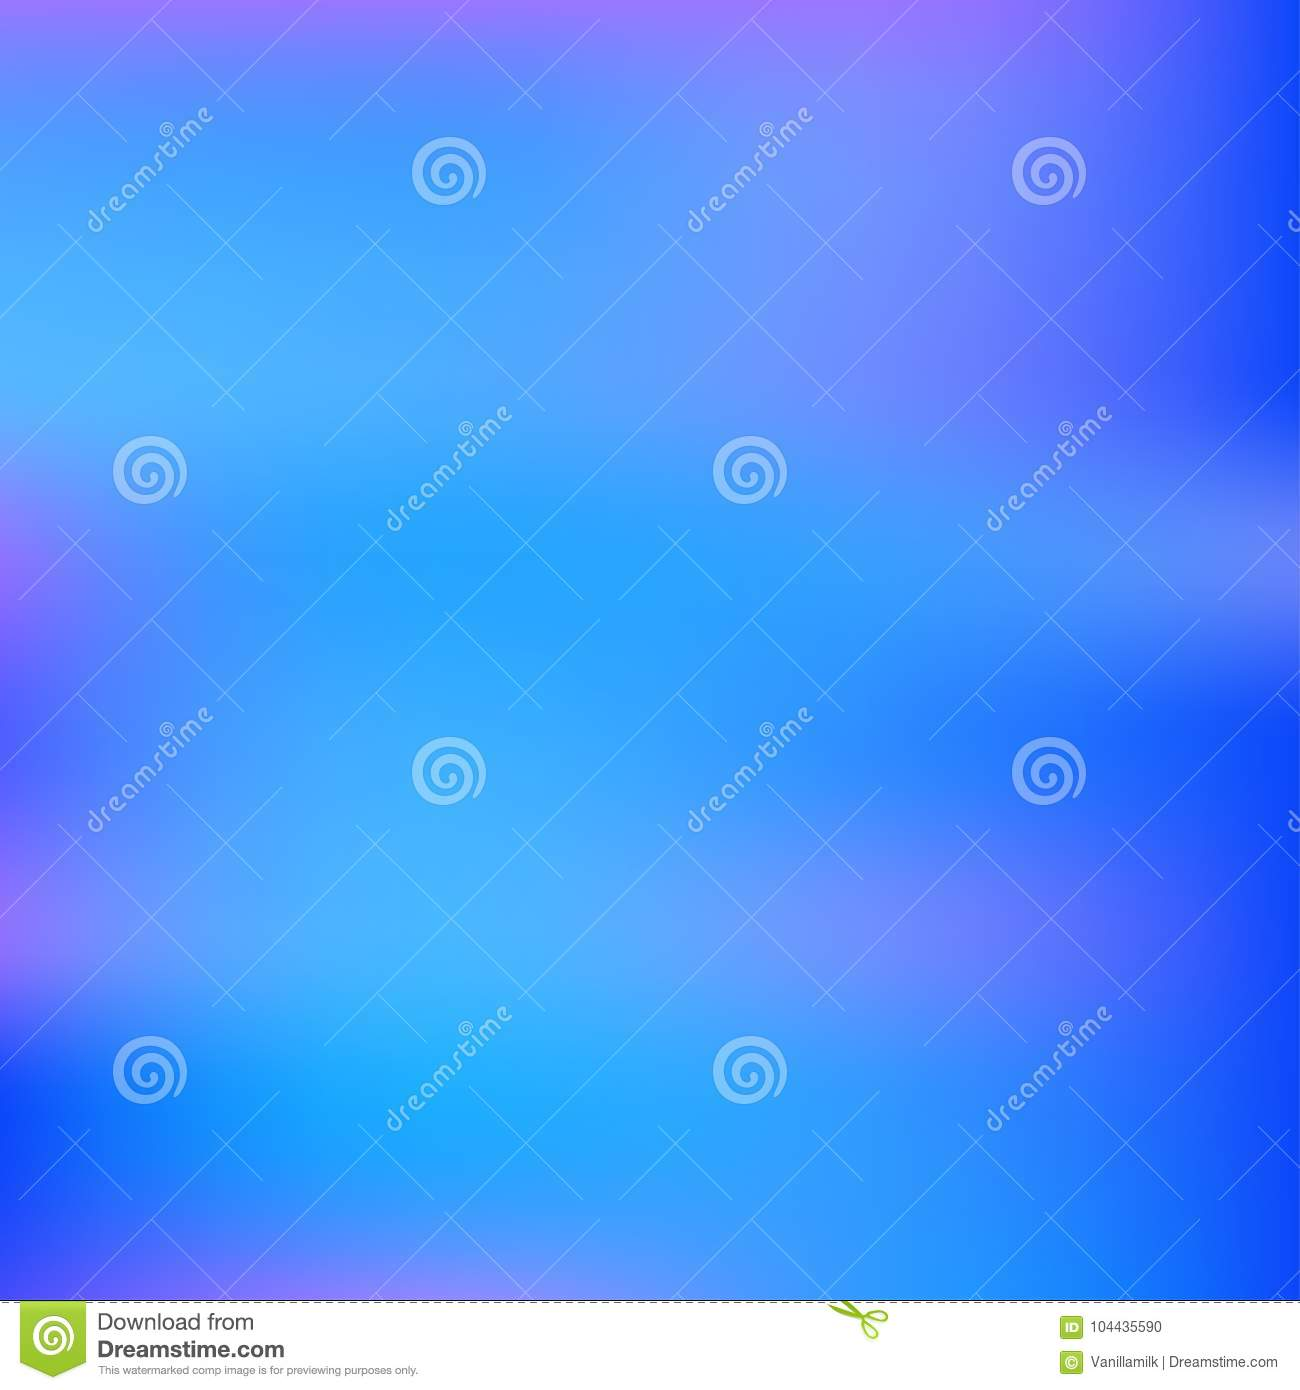 Abstract mesh gradient pattern background for card